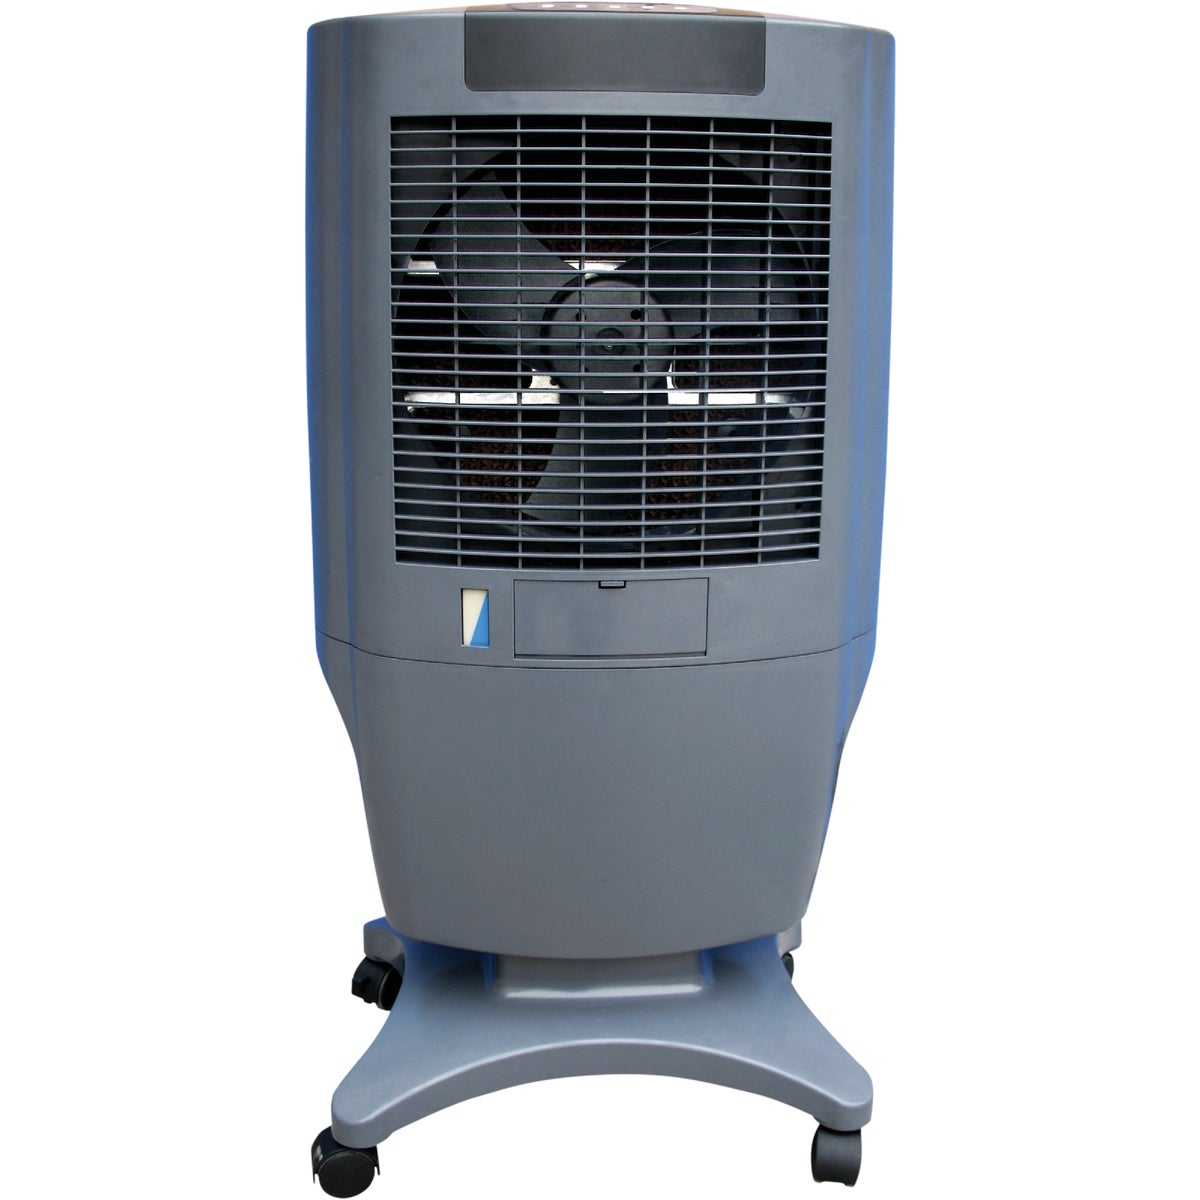 700CFM PORT EVAP COOLER